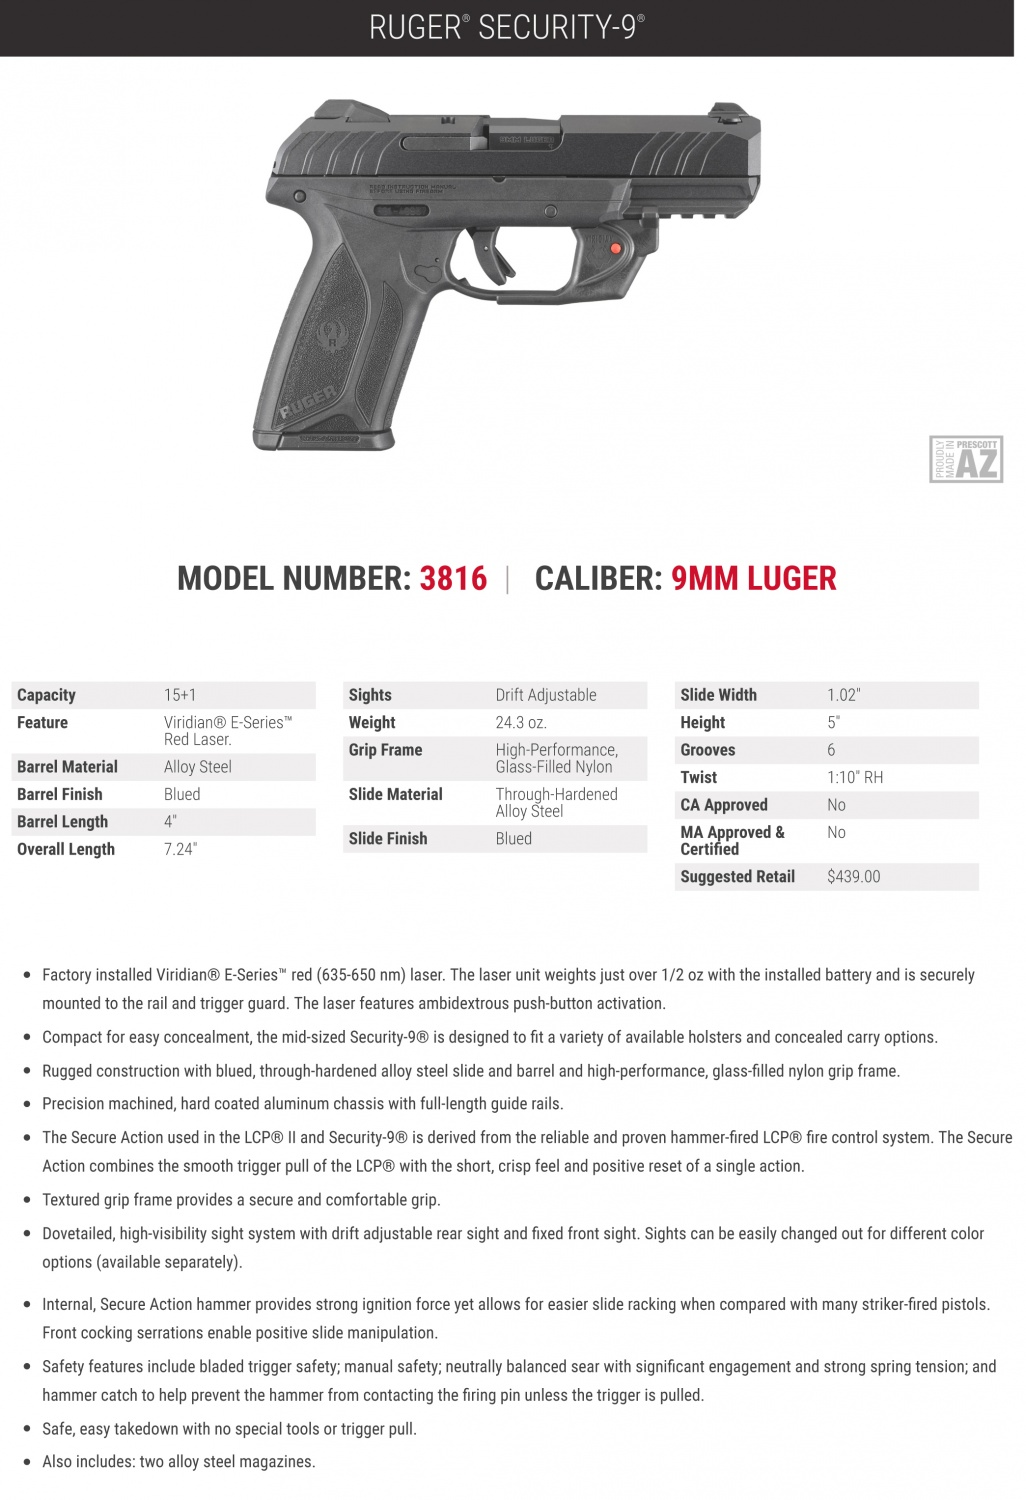 Visible Protection: NEW Ruger Security-9 w/ Viridian E